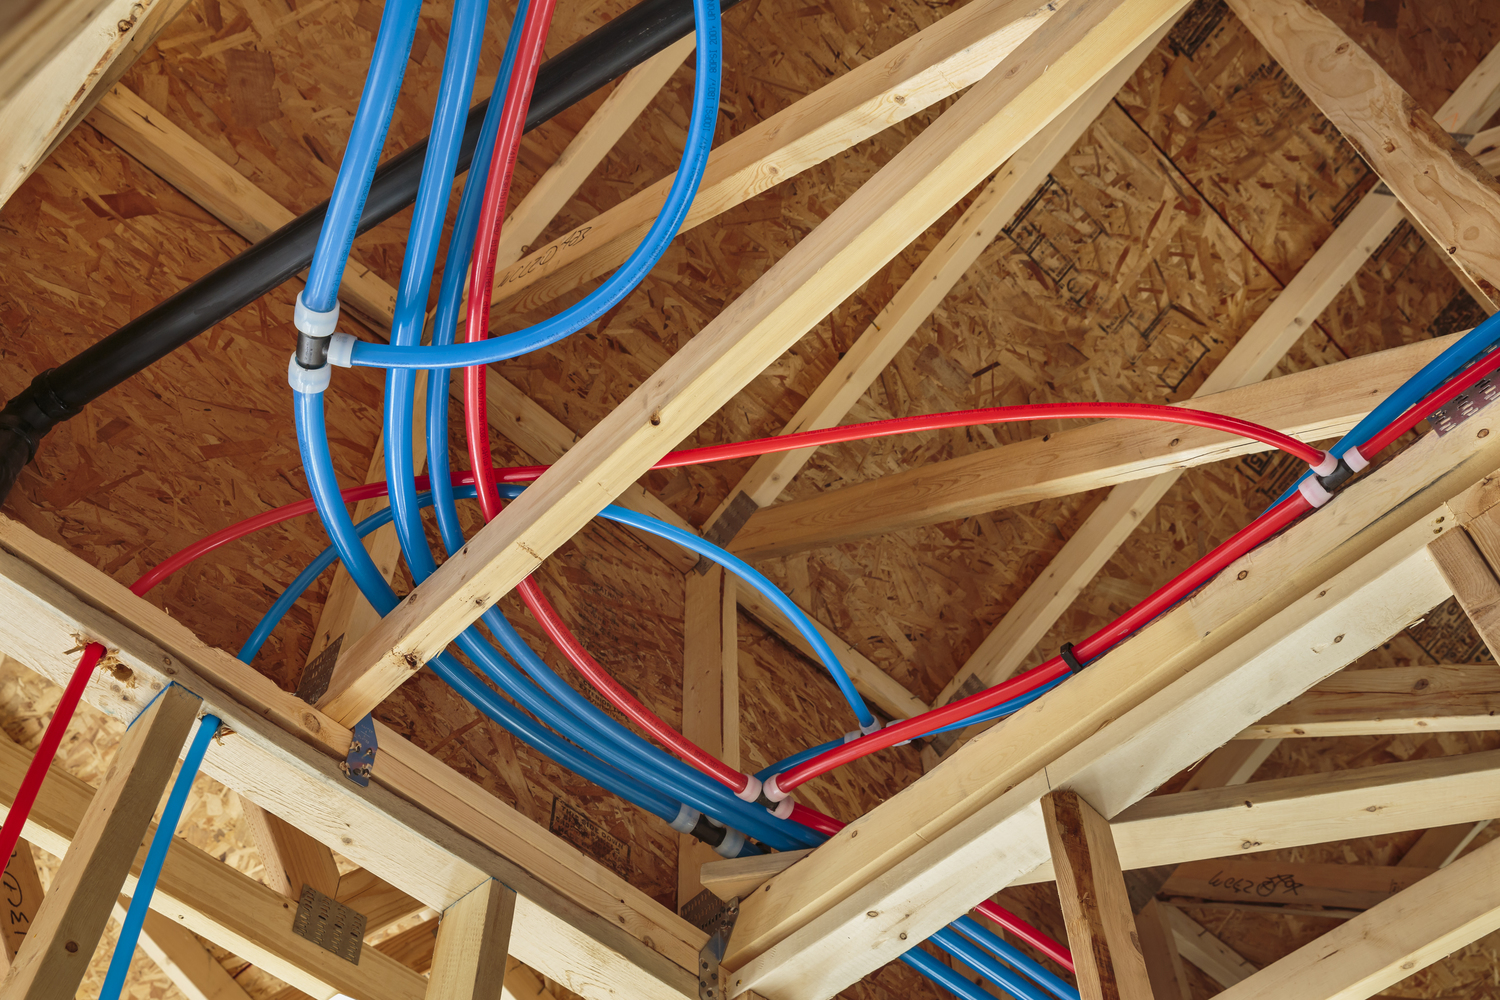 drop pin pex problems with and plumbing tubing